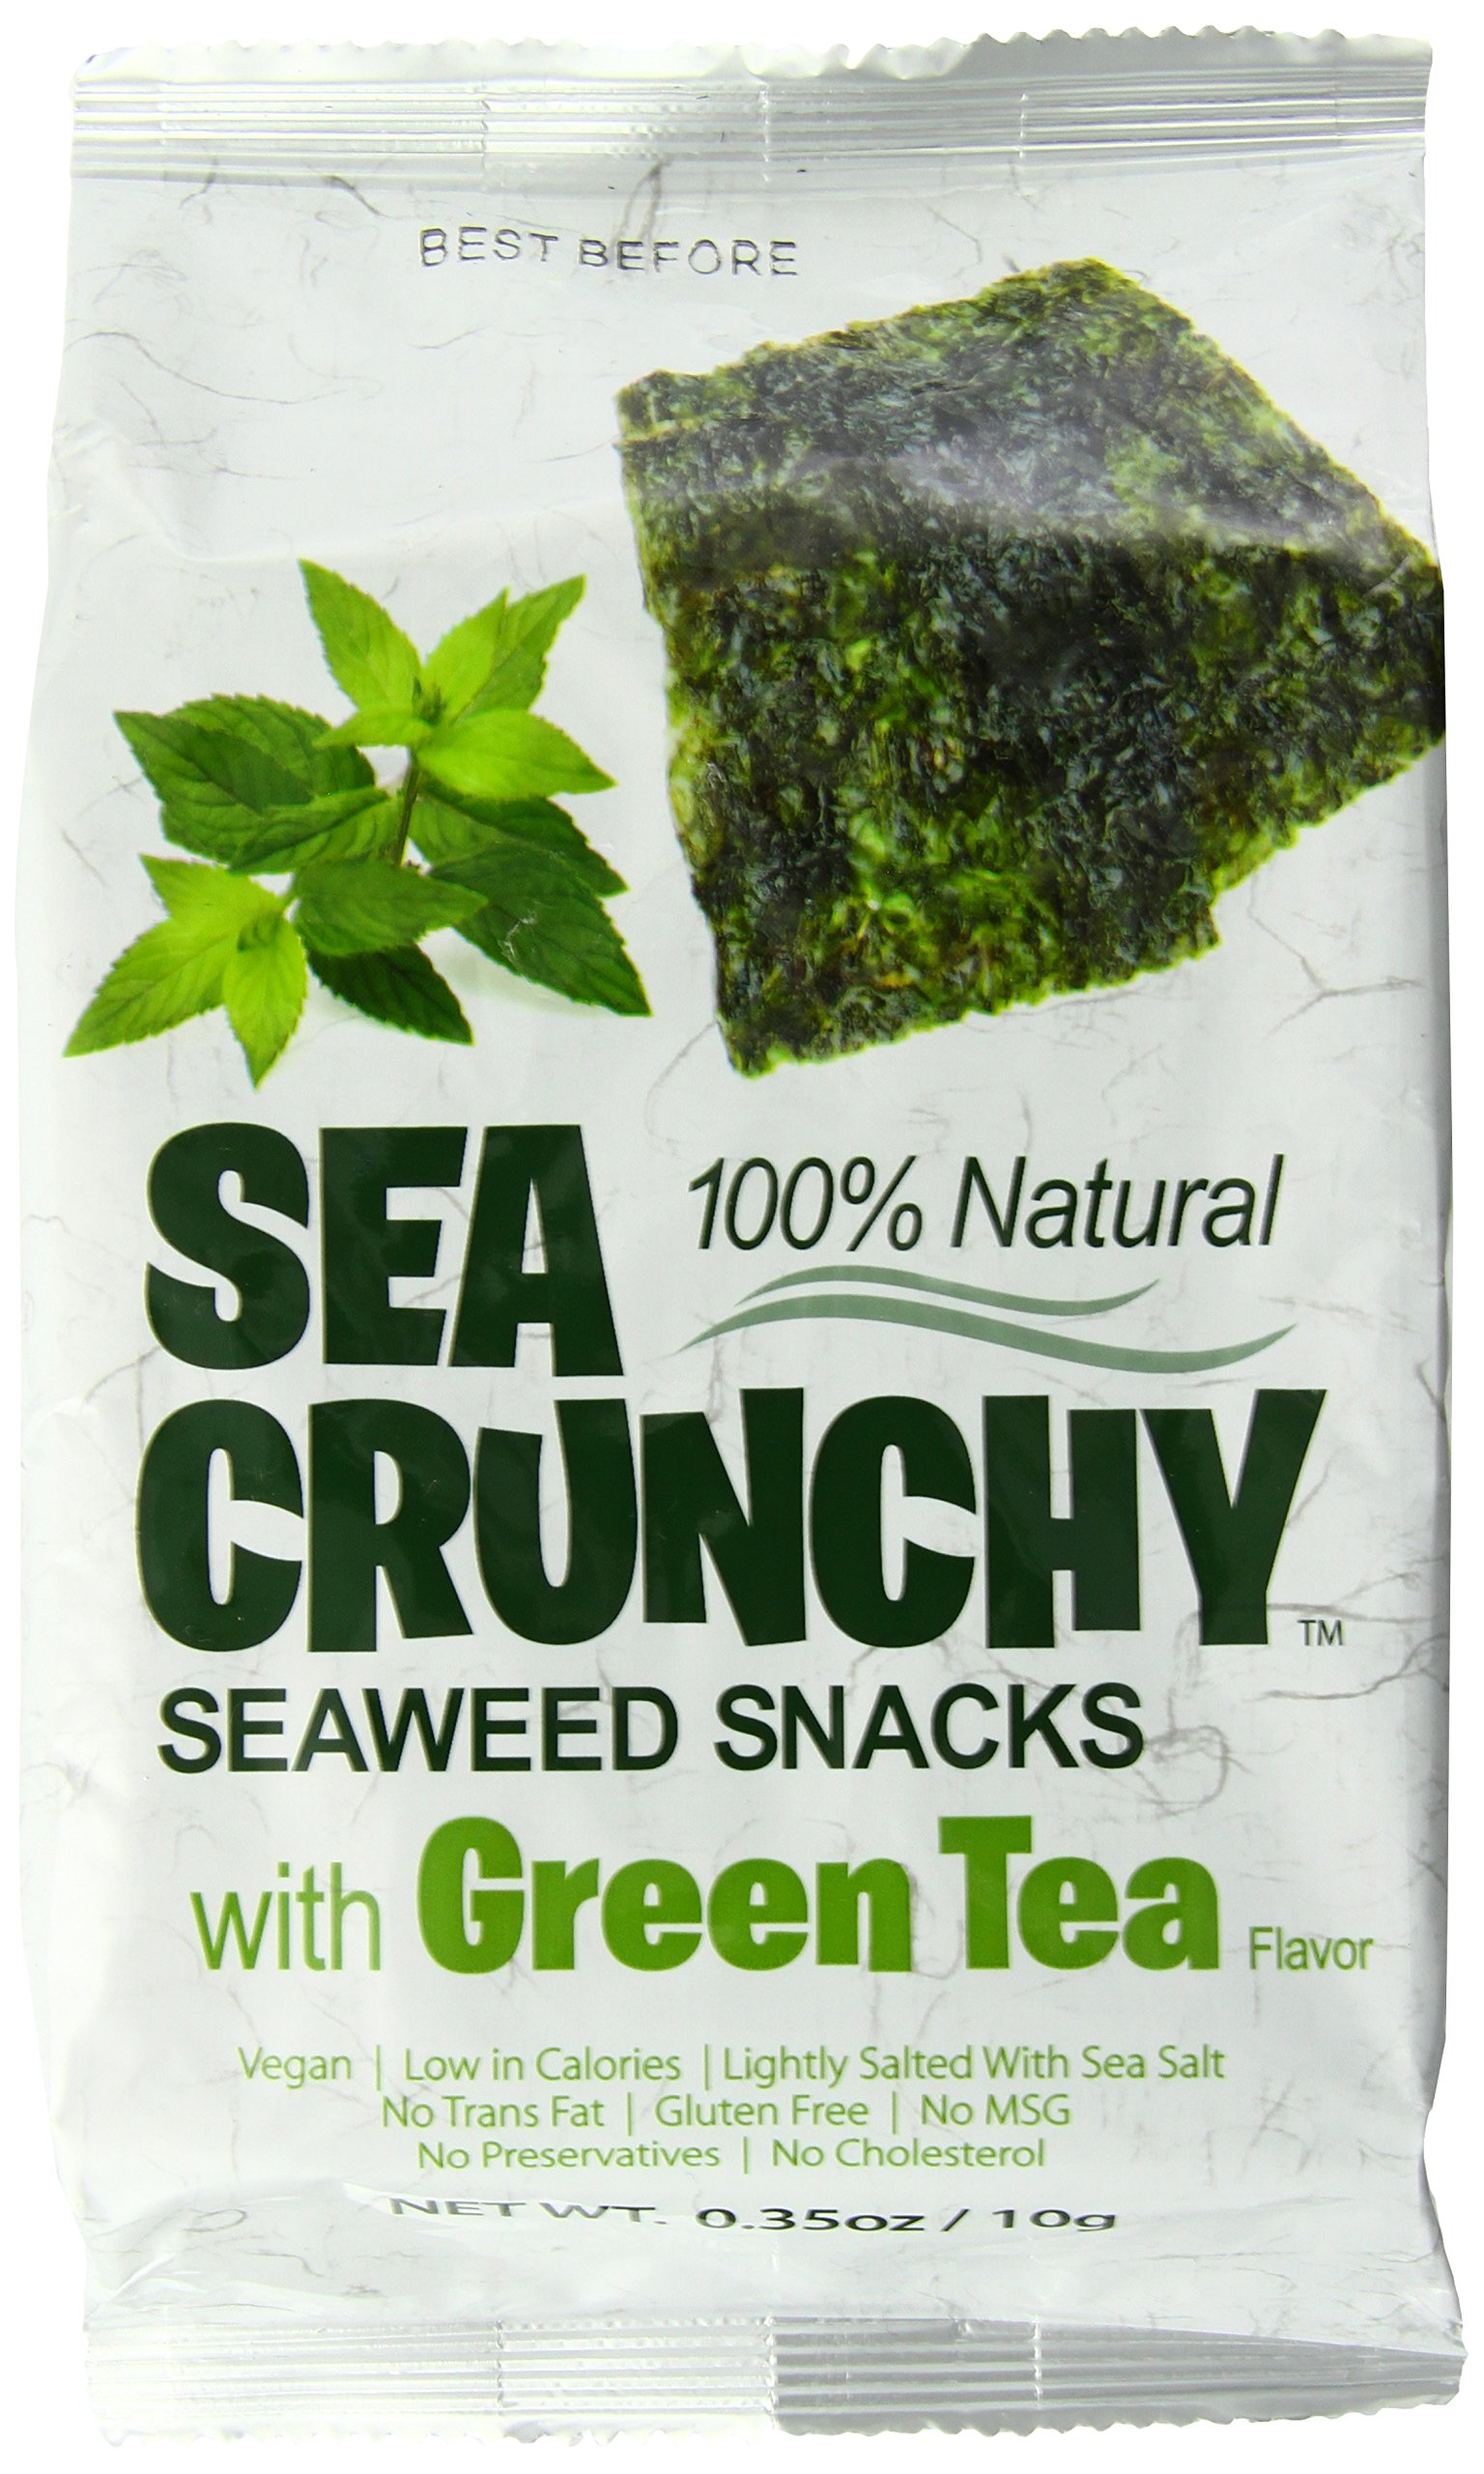 Sea Crunchy 100% Natural Roasted Seaweed with Green Tea Flavor, 0.35 oz (Pack of 12) by Sea Crunchy